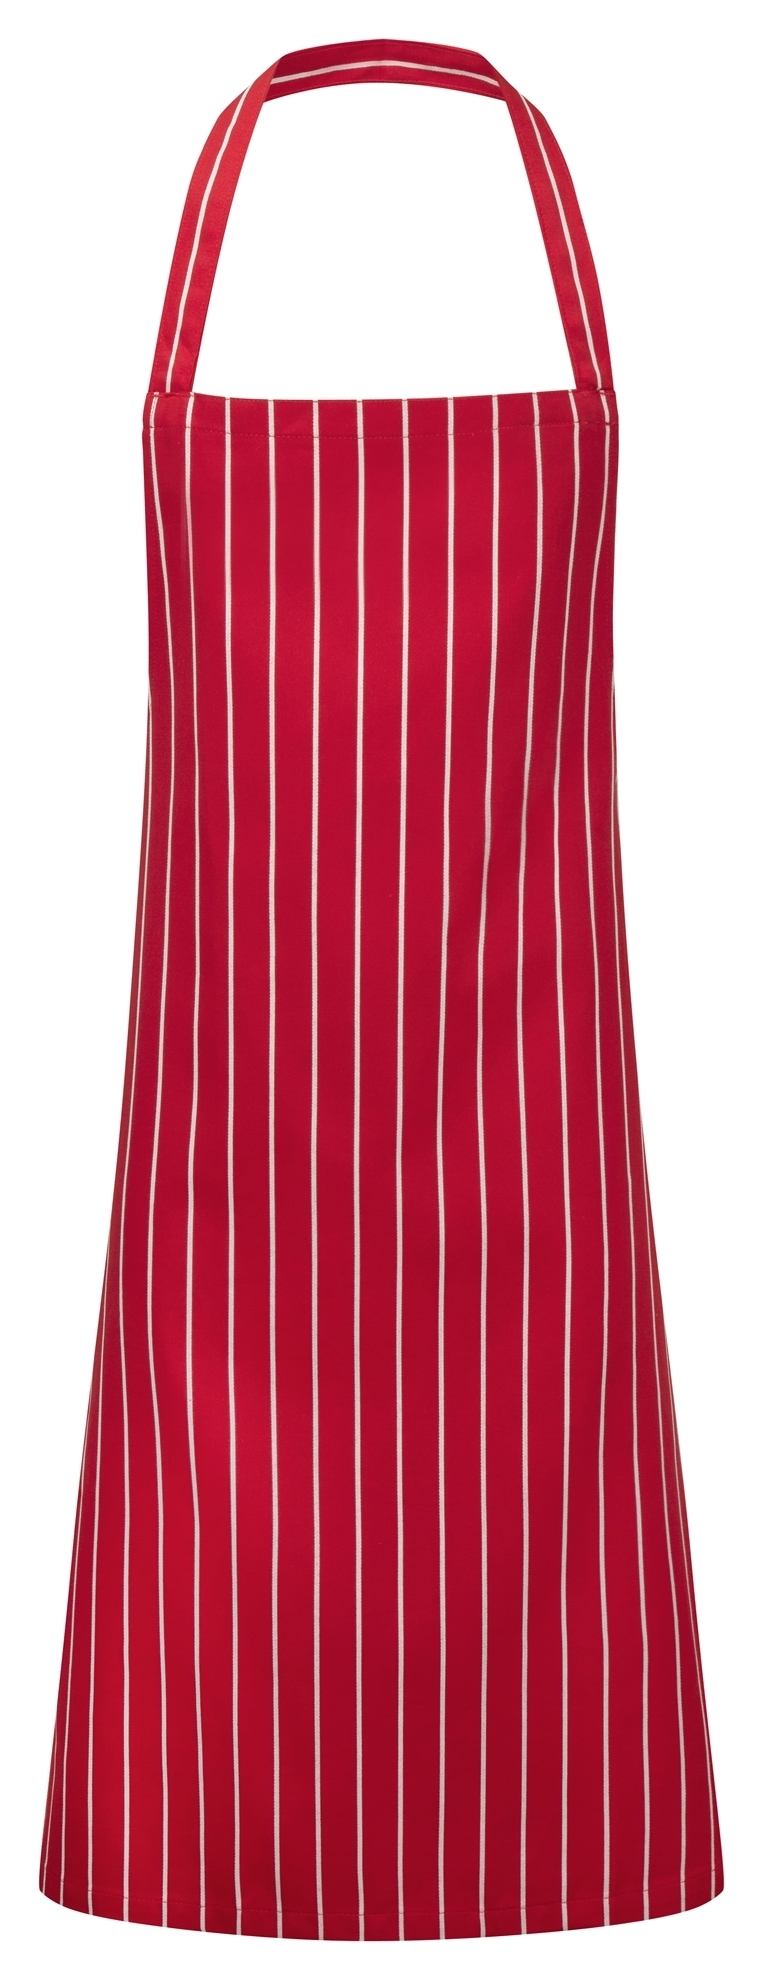 Picture of Chefs long apron - Red / White